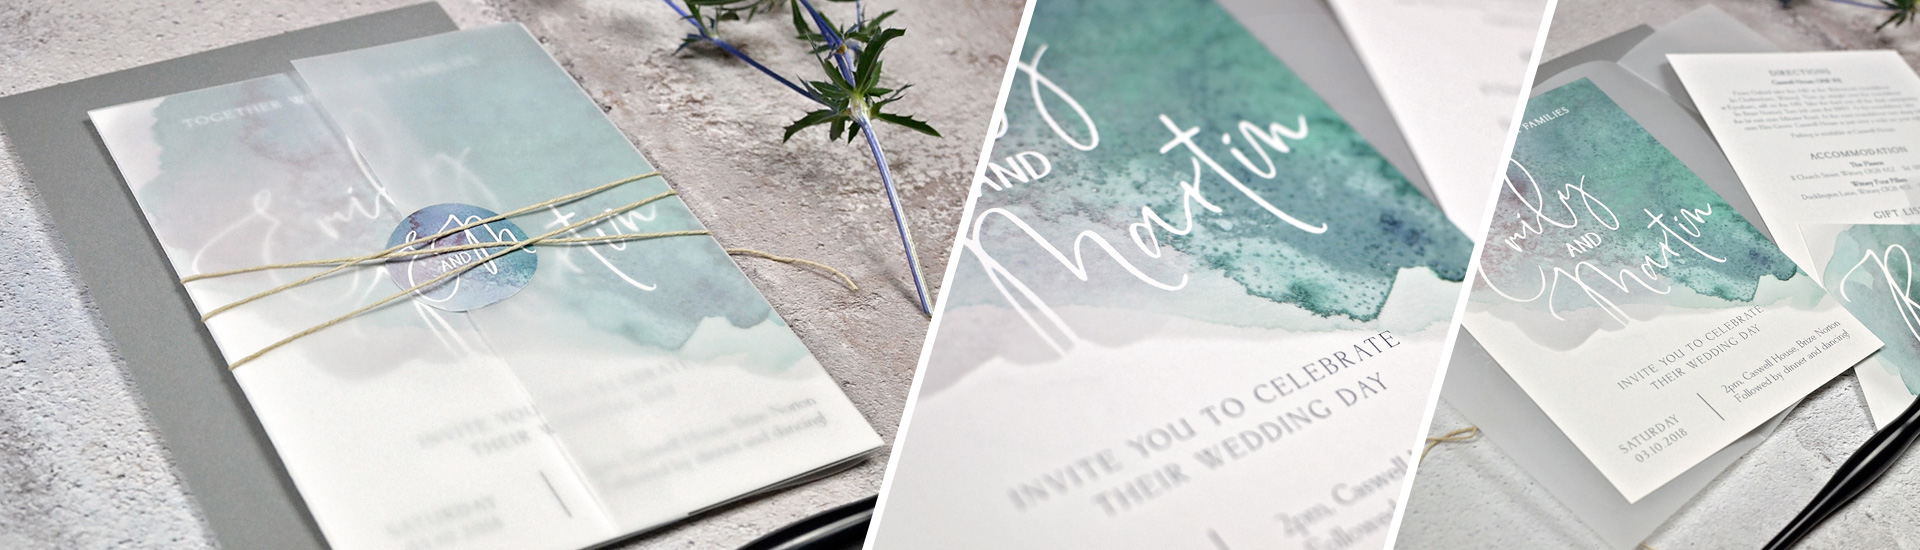 watercolour wedding invitation and wedding stationery